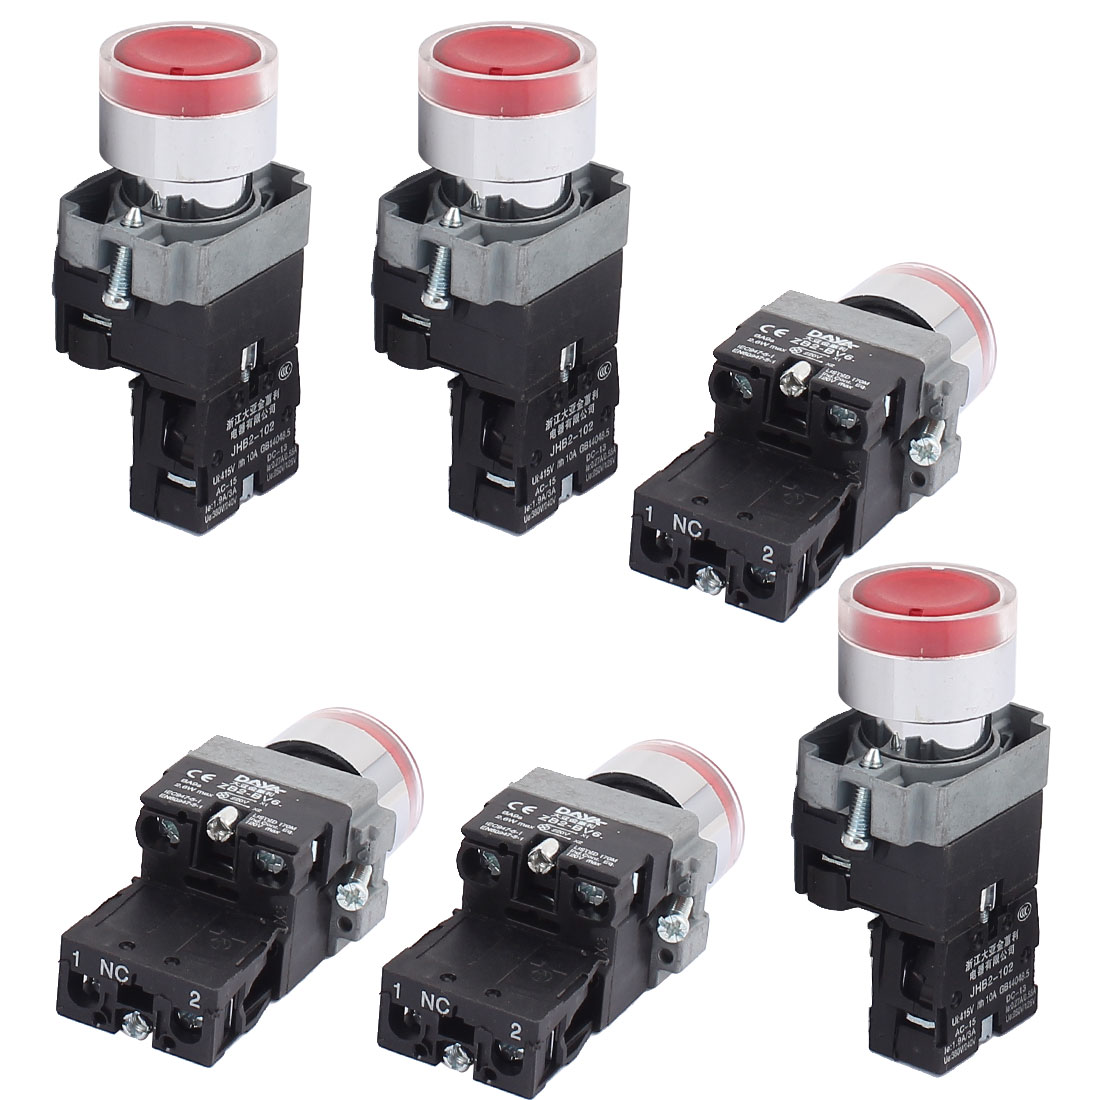 AC 415V 10A Momentary NO Red Light Push Button Switch Contact Block 6PCS